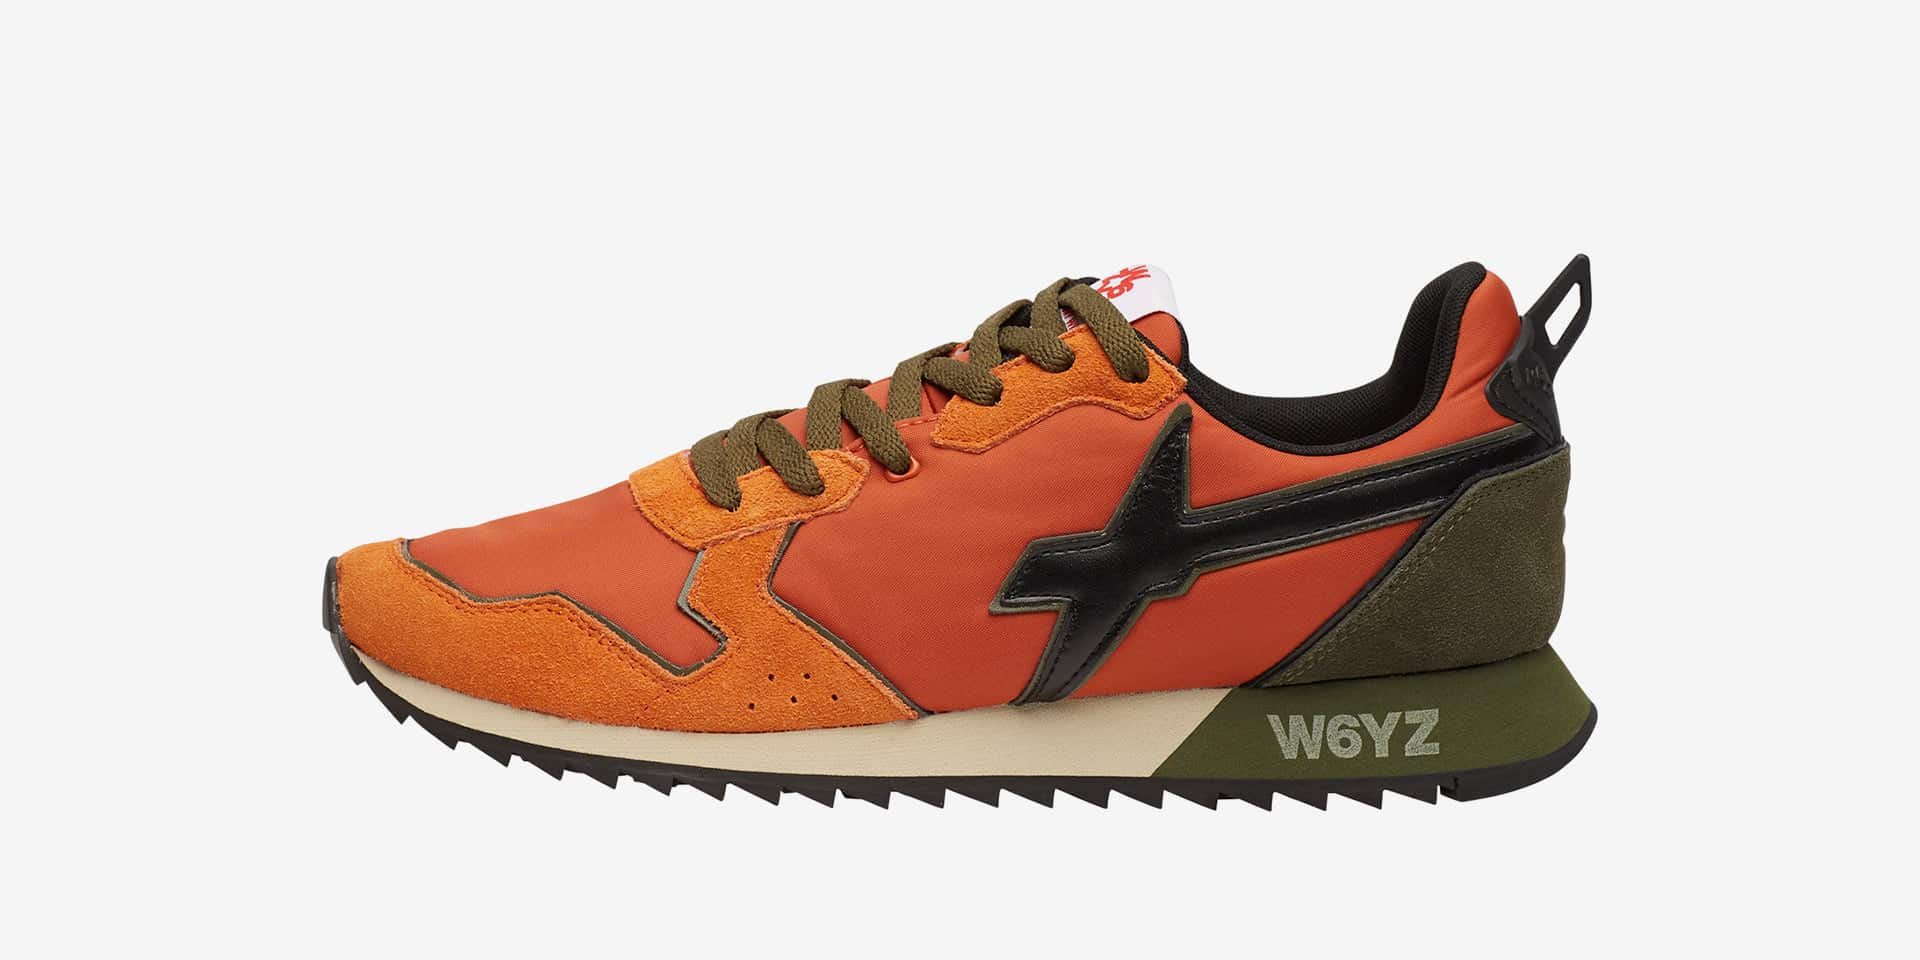 JET-M. - Leather and fabric sneakers - Orange/Black